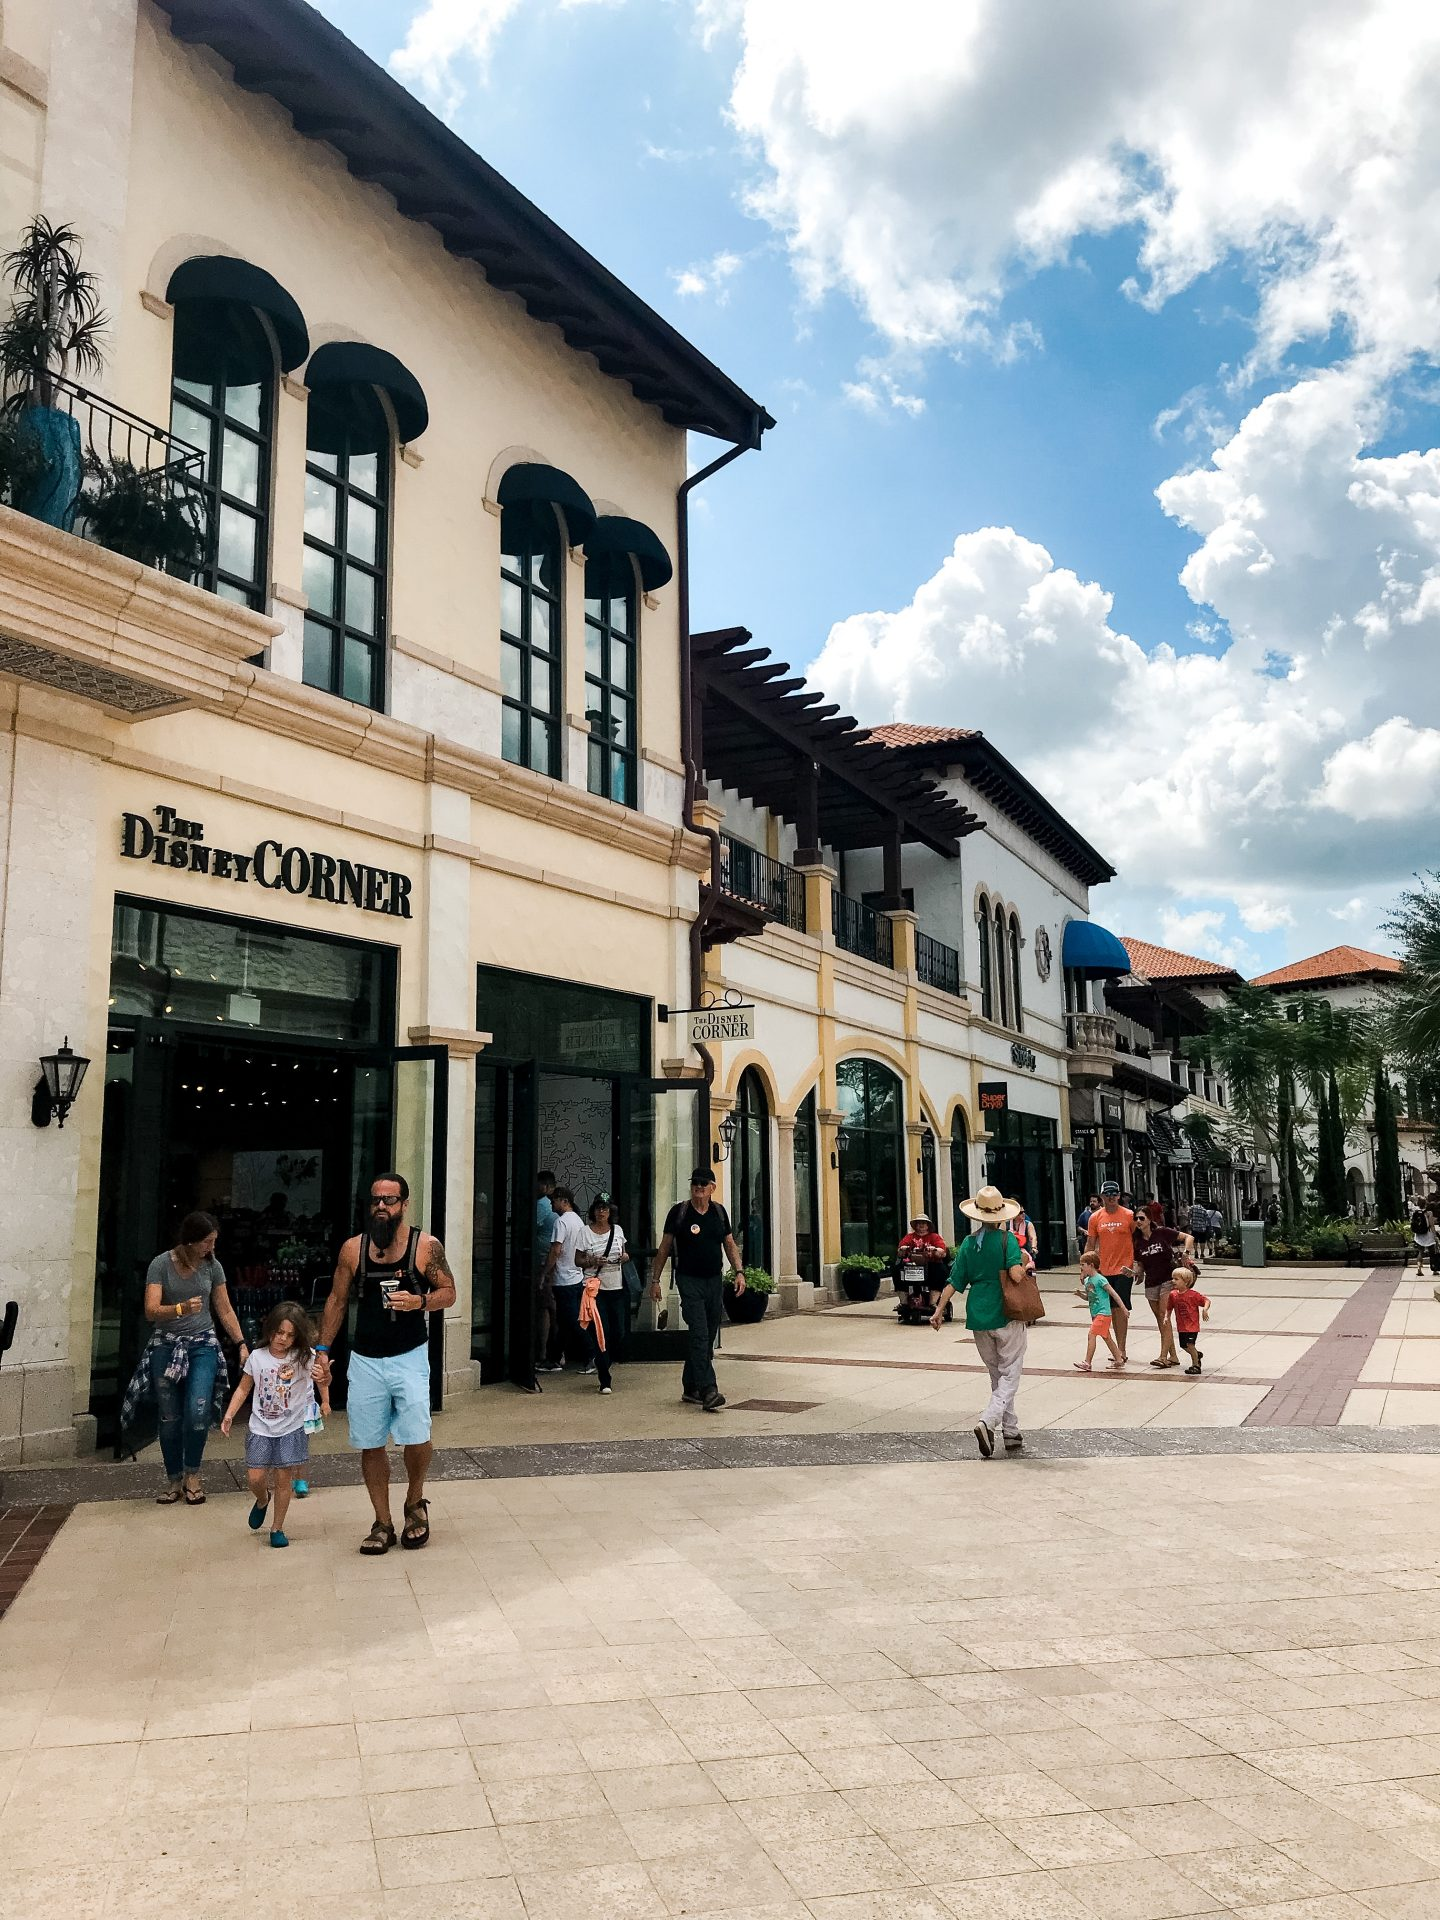 DIsney Springs shopping area